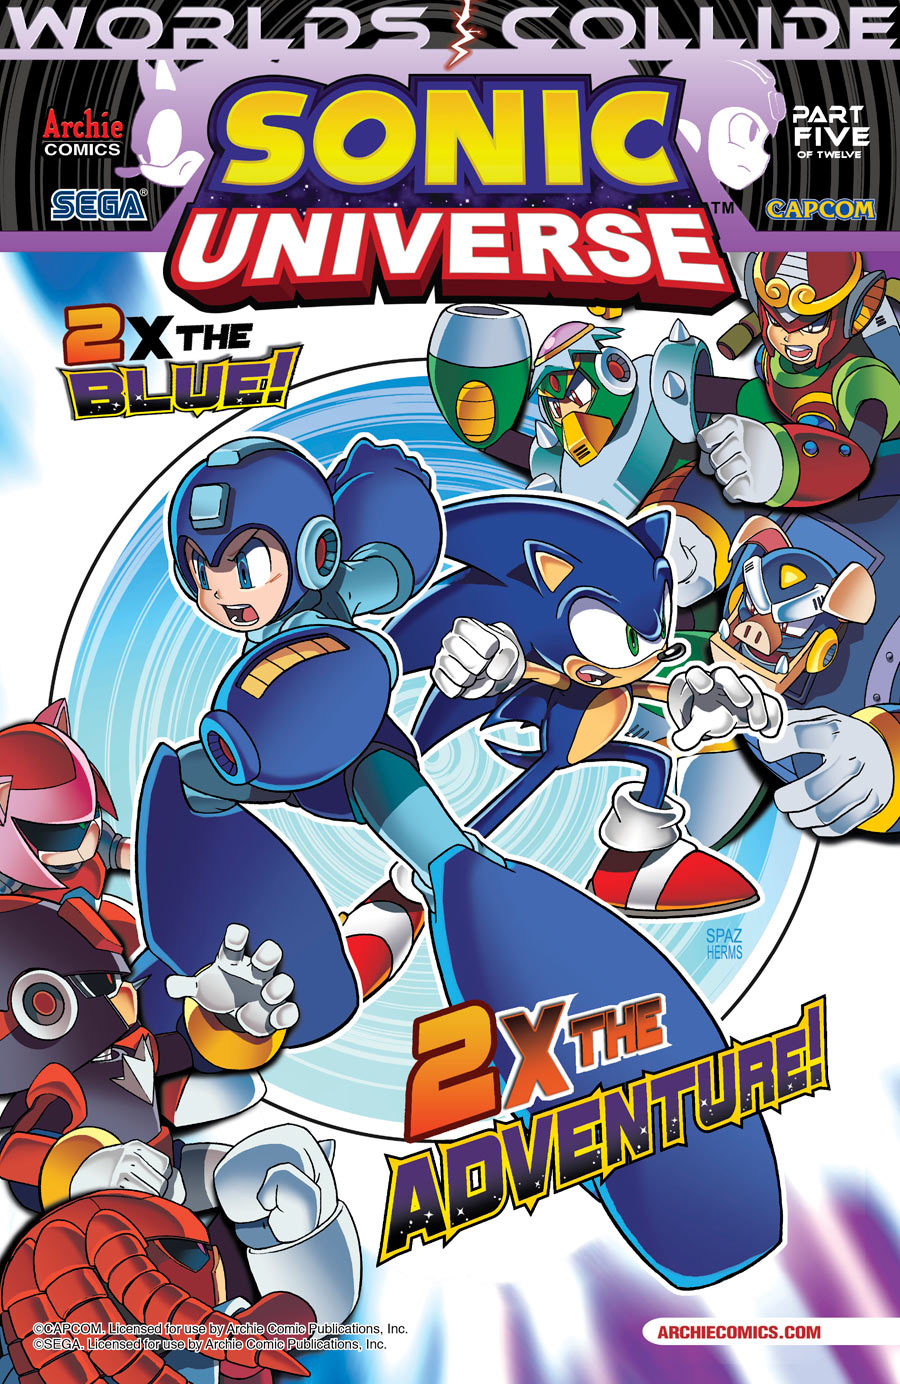 Preview: Sonic Universe #6 – Page 1 - comiXology